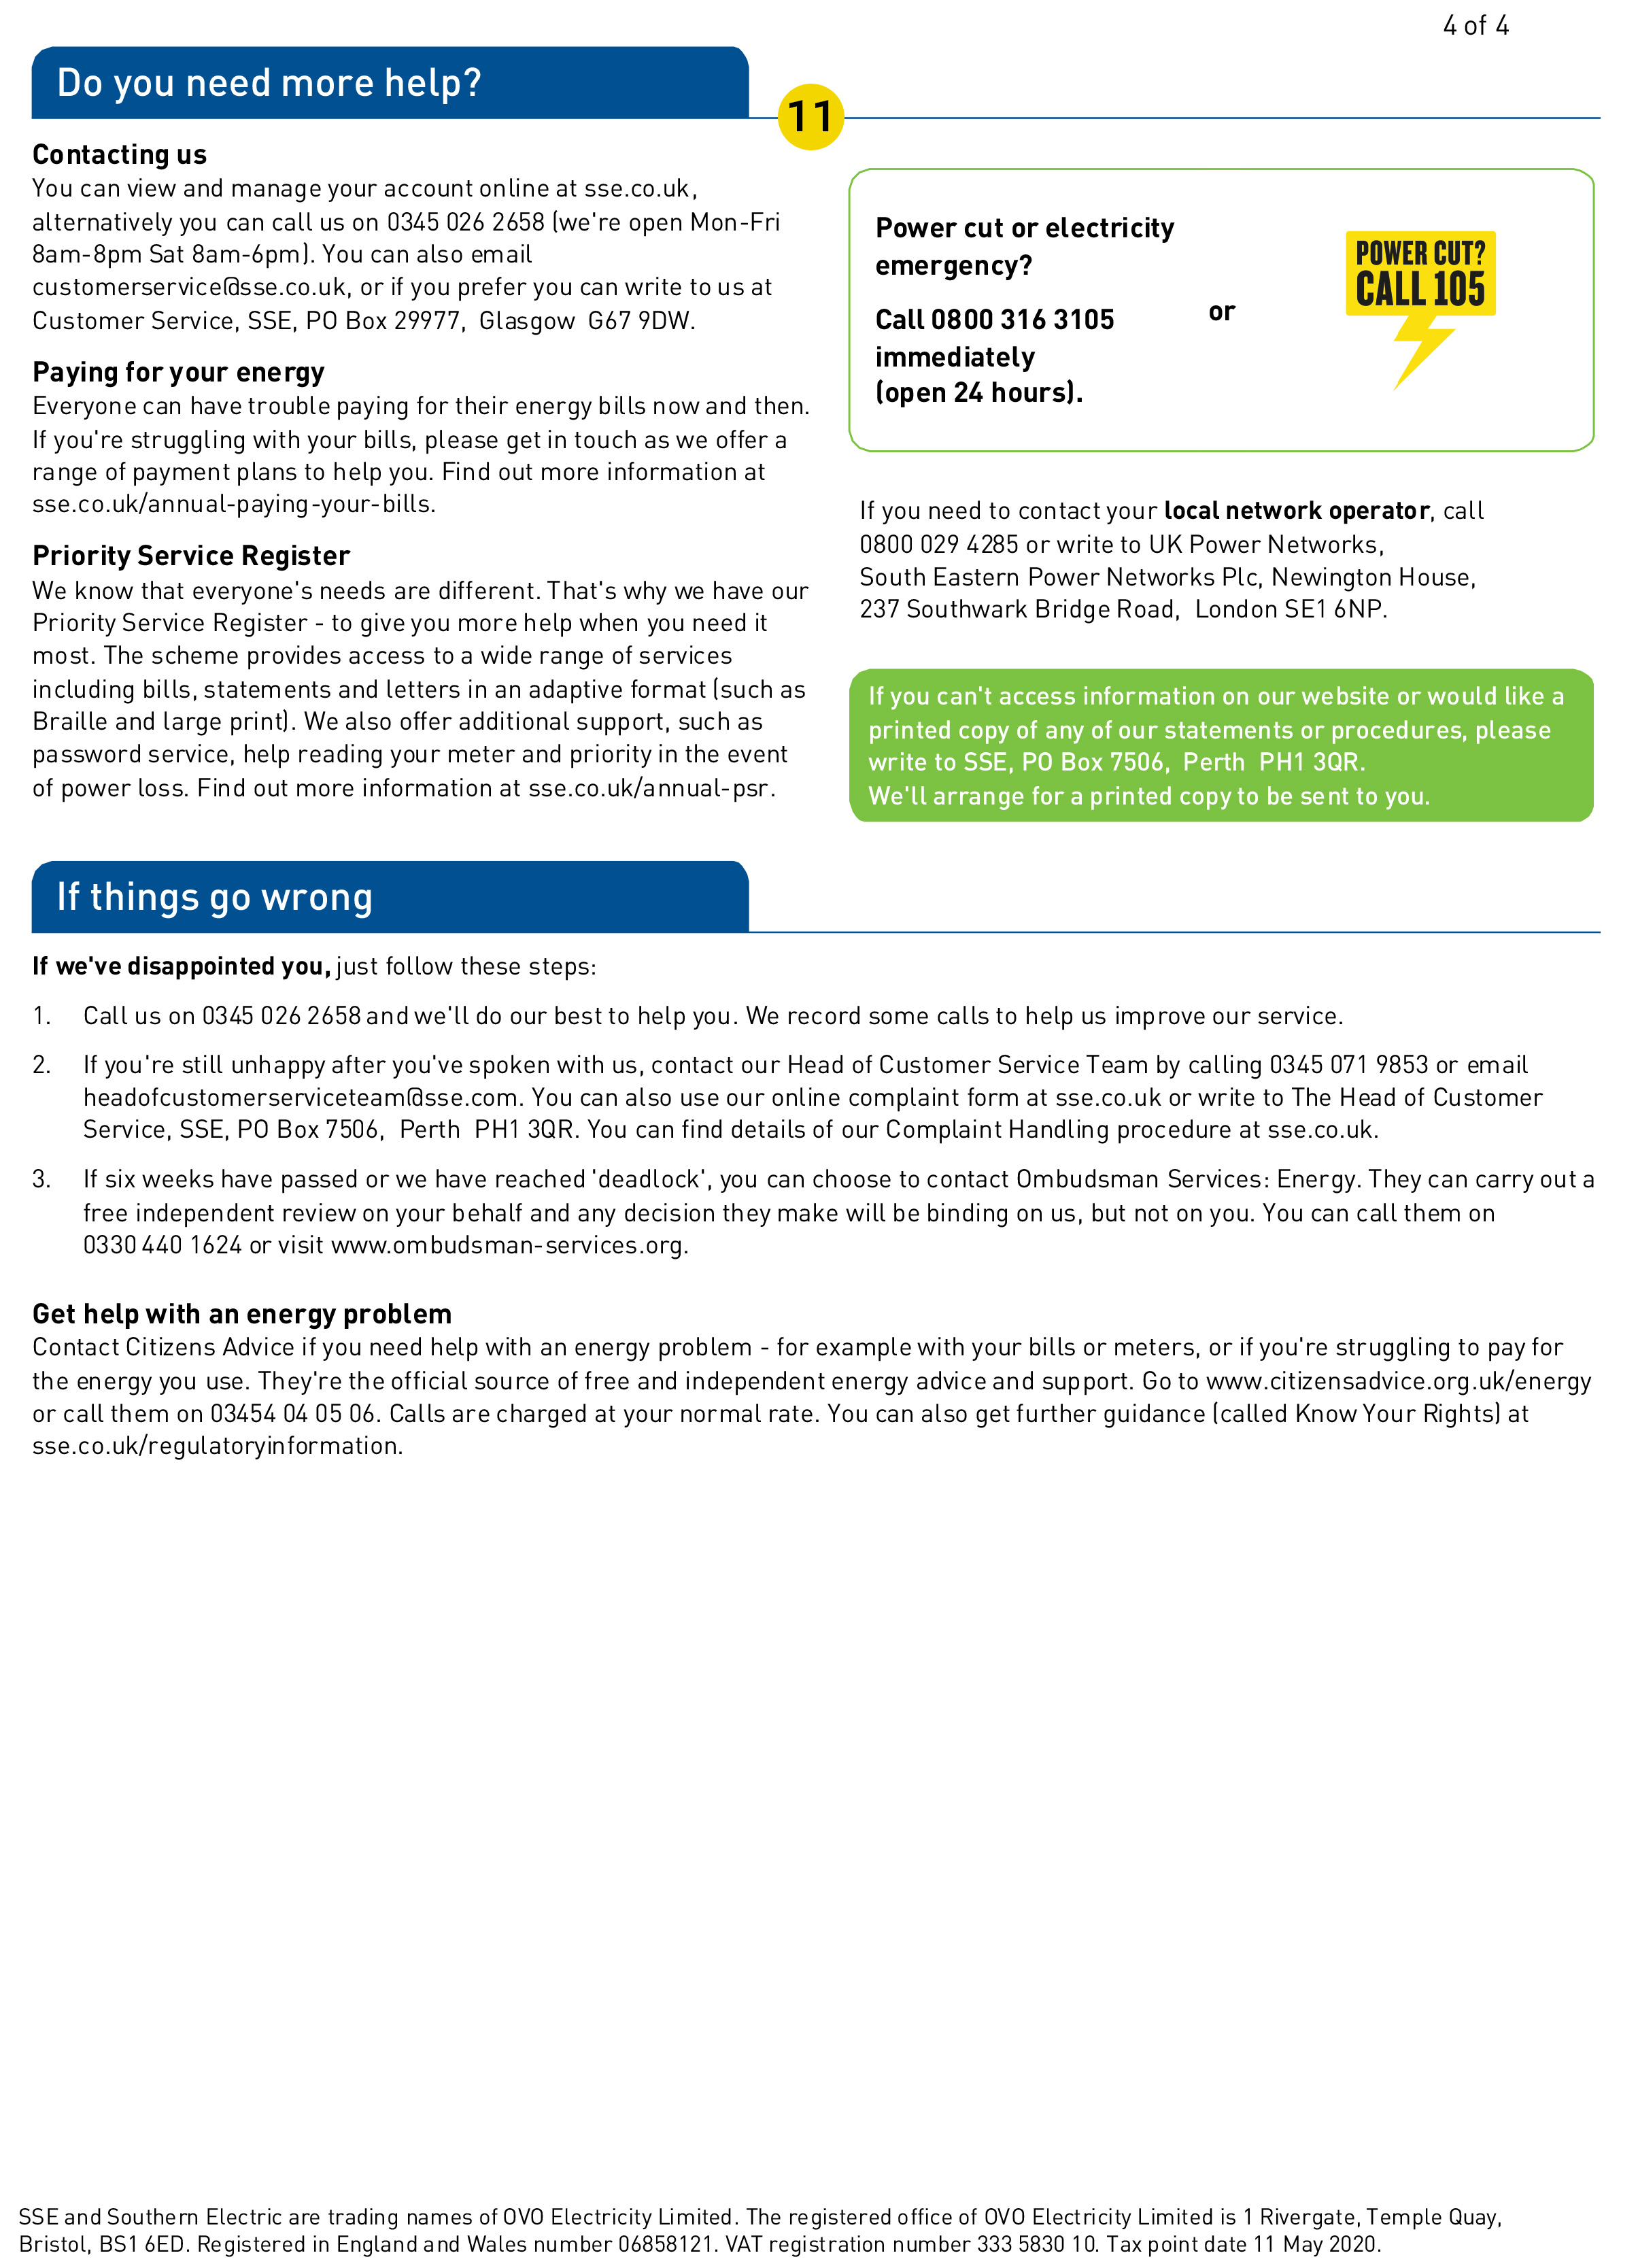 SSE energy bill page 4